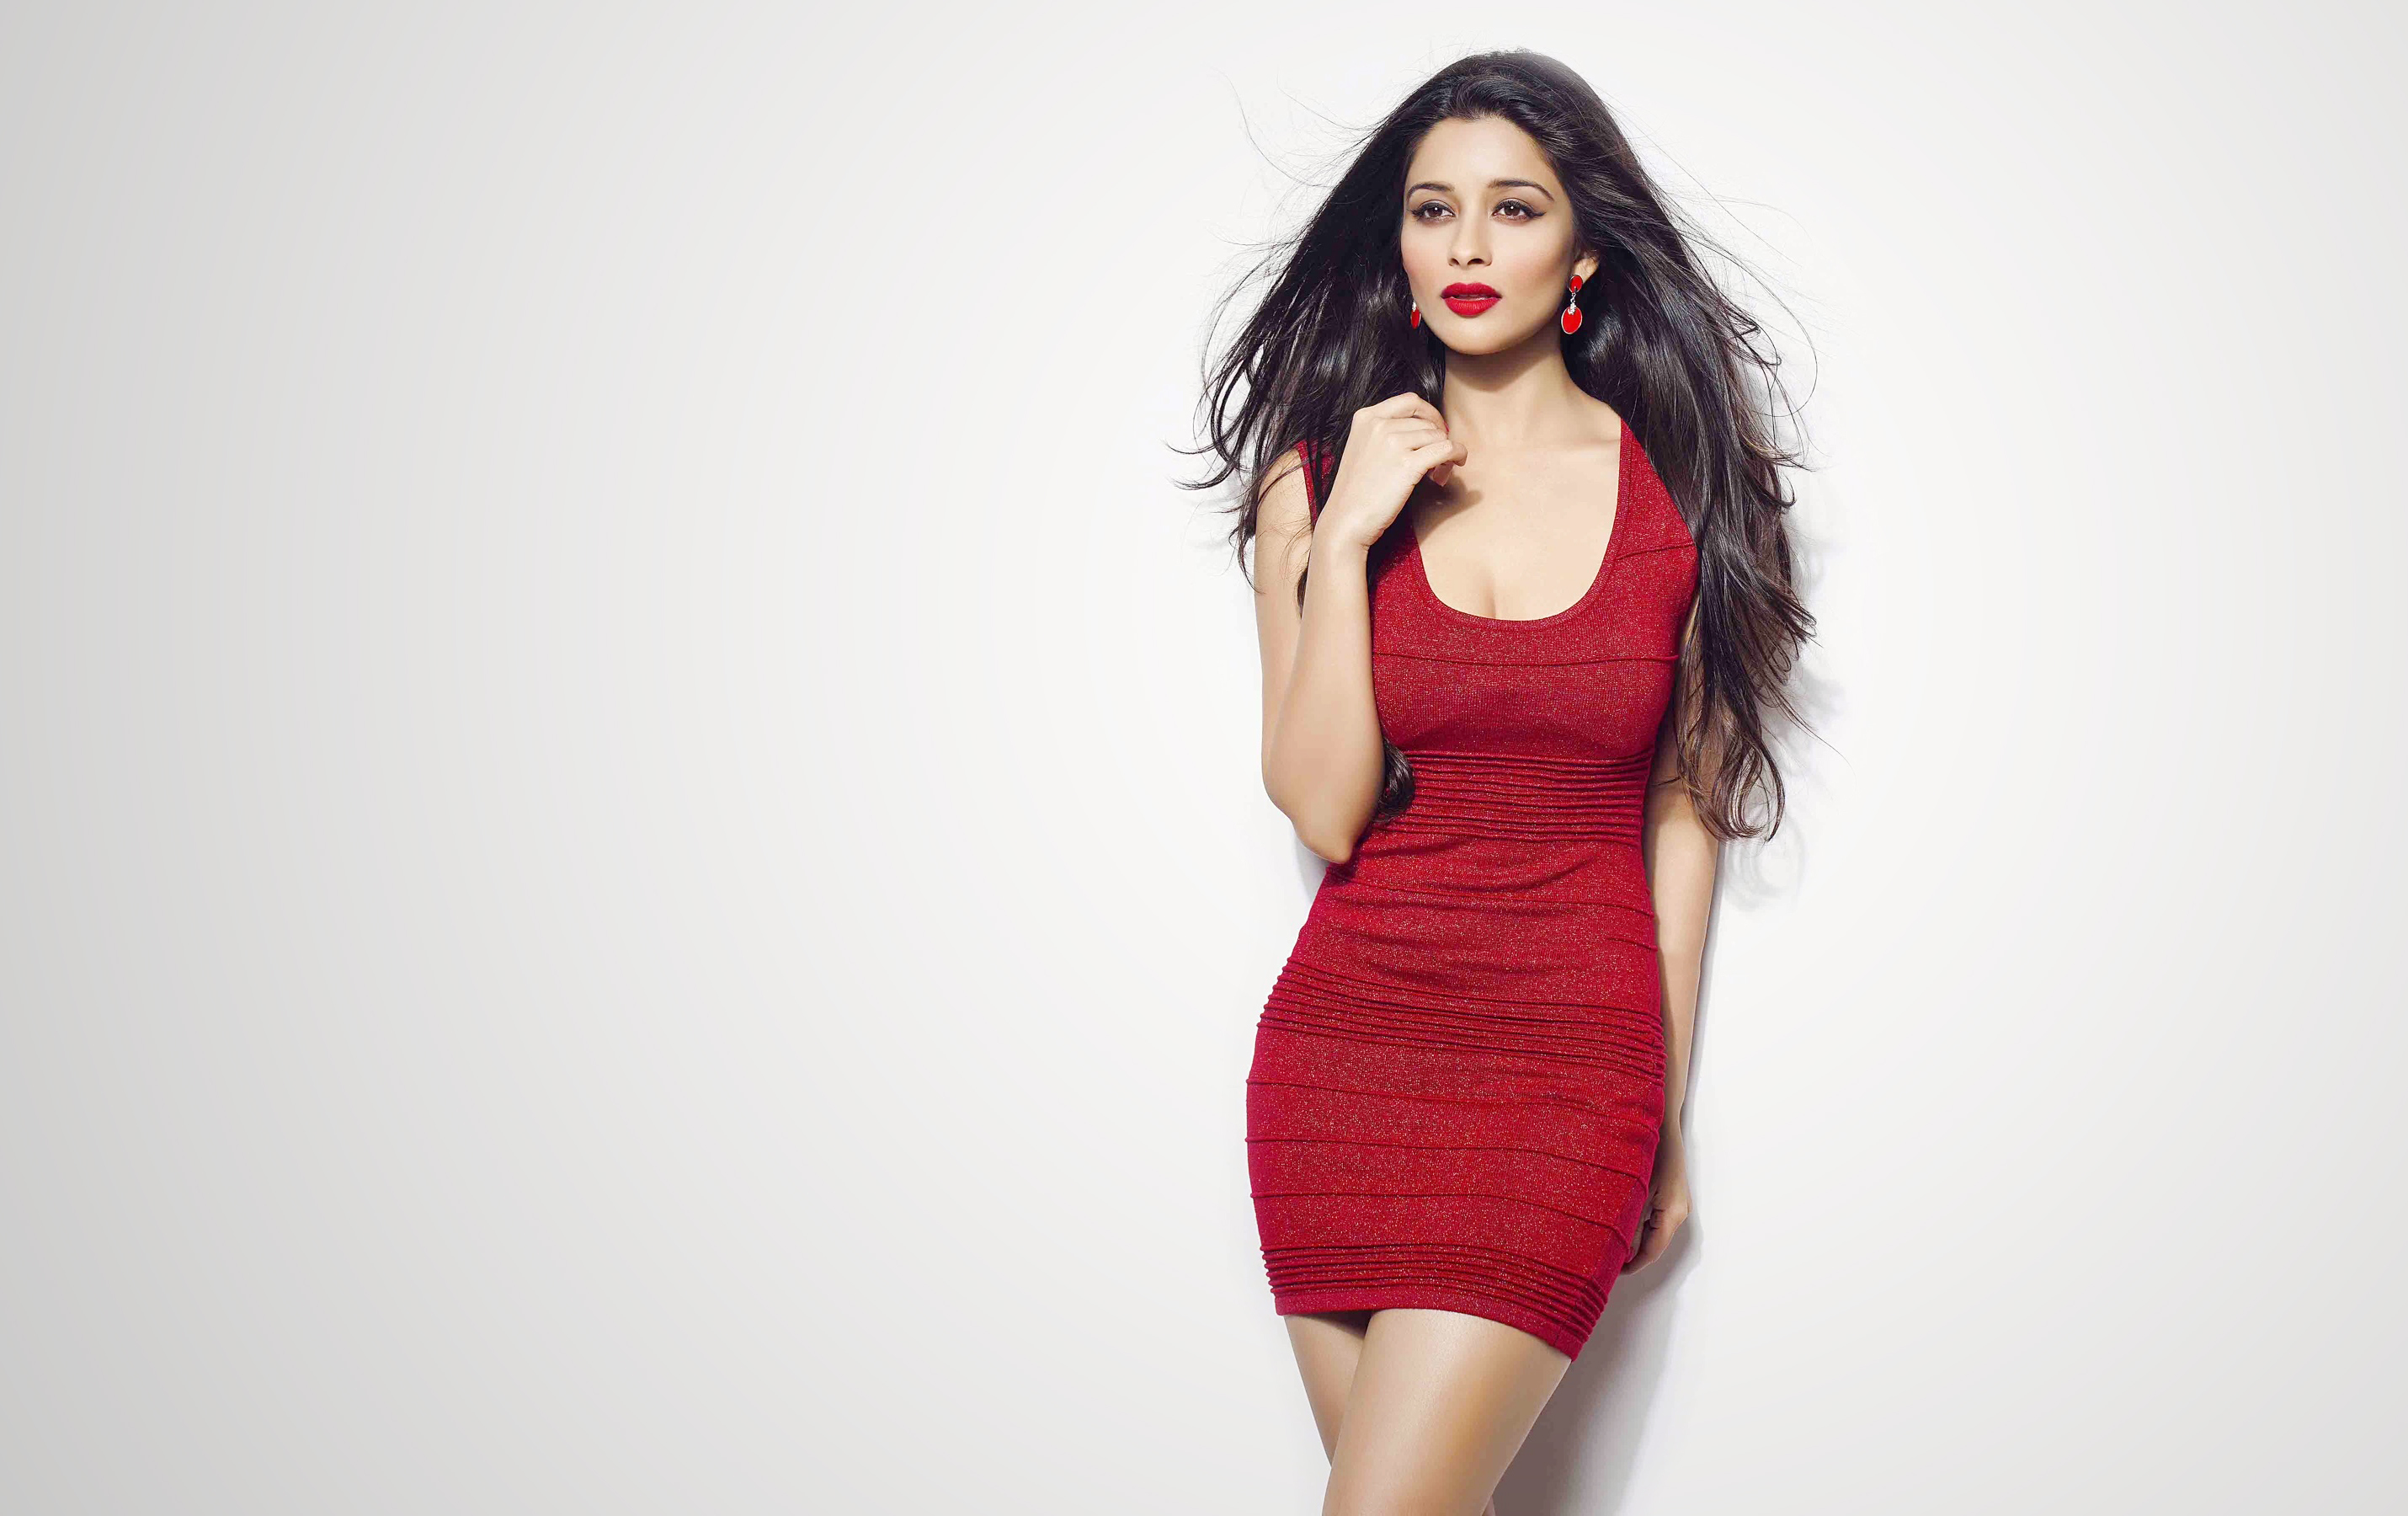 Wallpaper Madhurima Banerjee, Brunette, Sexy, Indian, Red -9069